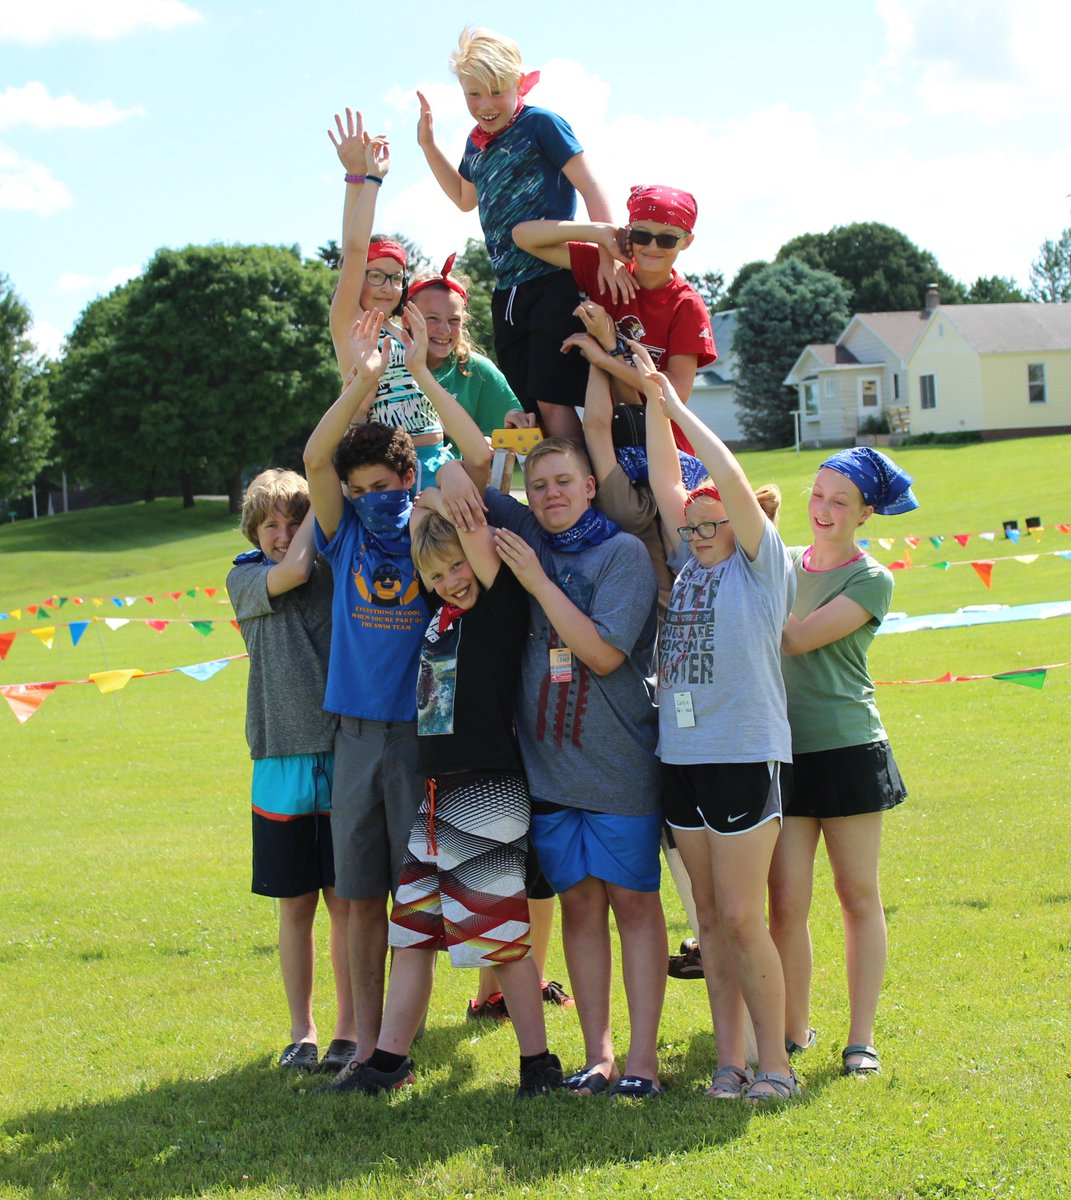 We made Vigelands Monolith together, and each posed as the Angry Boy, the Man Attacked by Babies, and the Woman Dancing and Holding her Hair. Its fun being statues! #NorwegianCamp #InspiredbyVigeland #Vigeland150 #LanguageCamp #SummerFun #SpringGroveMn